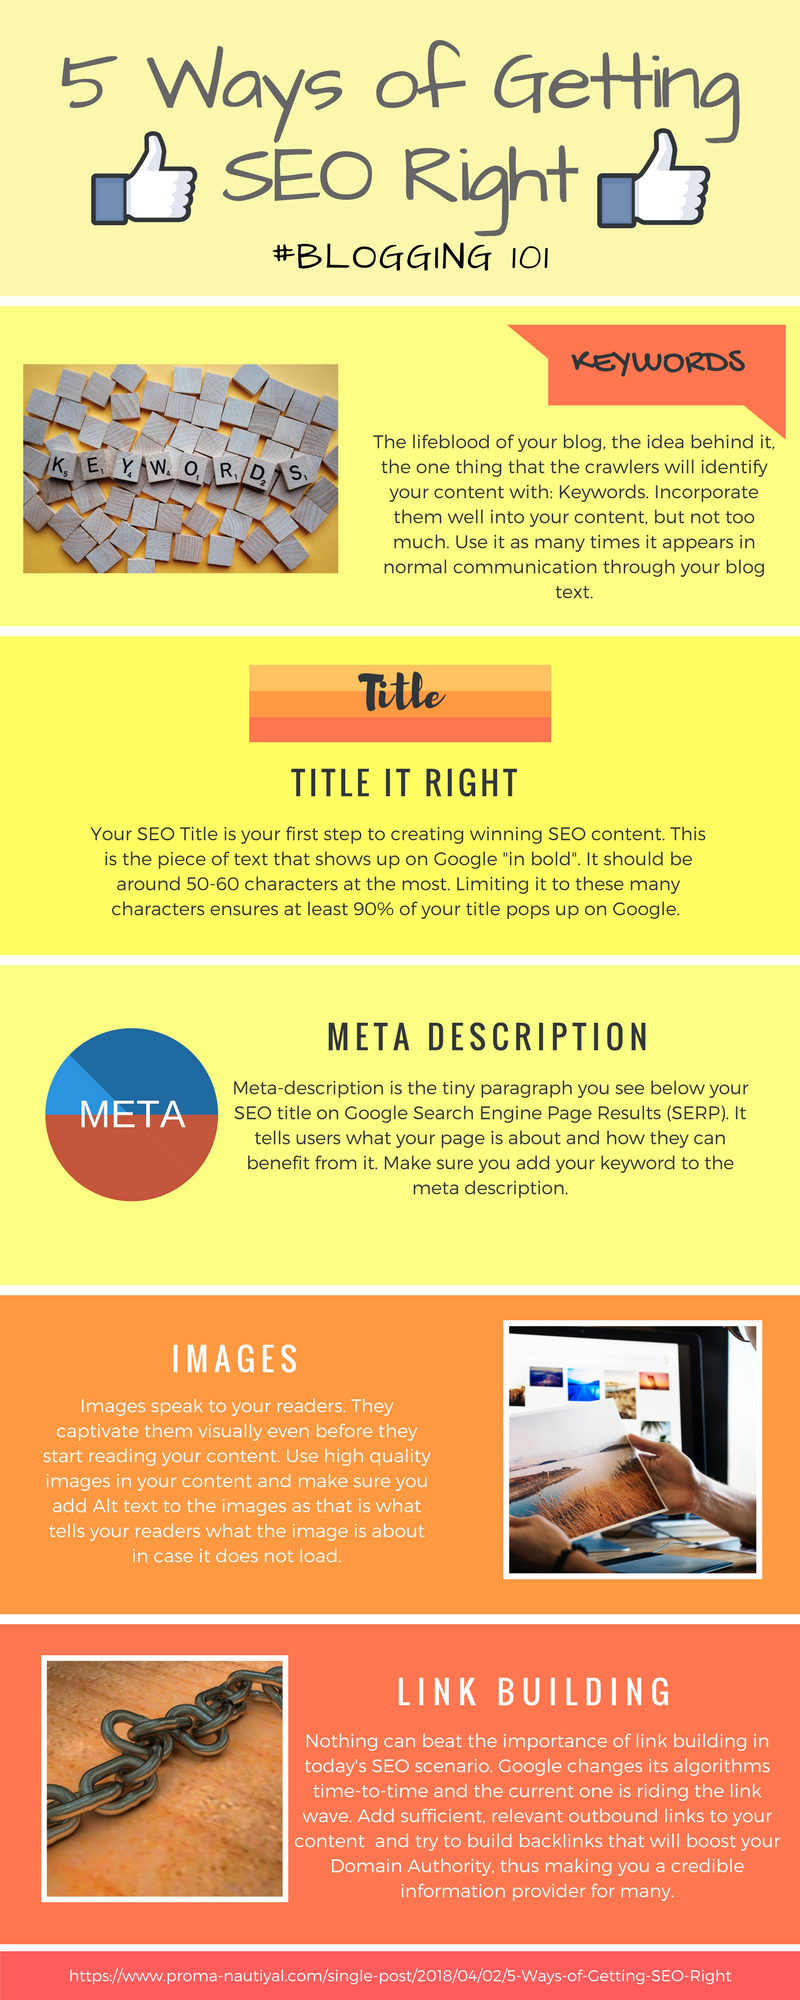 5 ways of getting SEO right - infographic